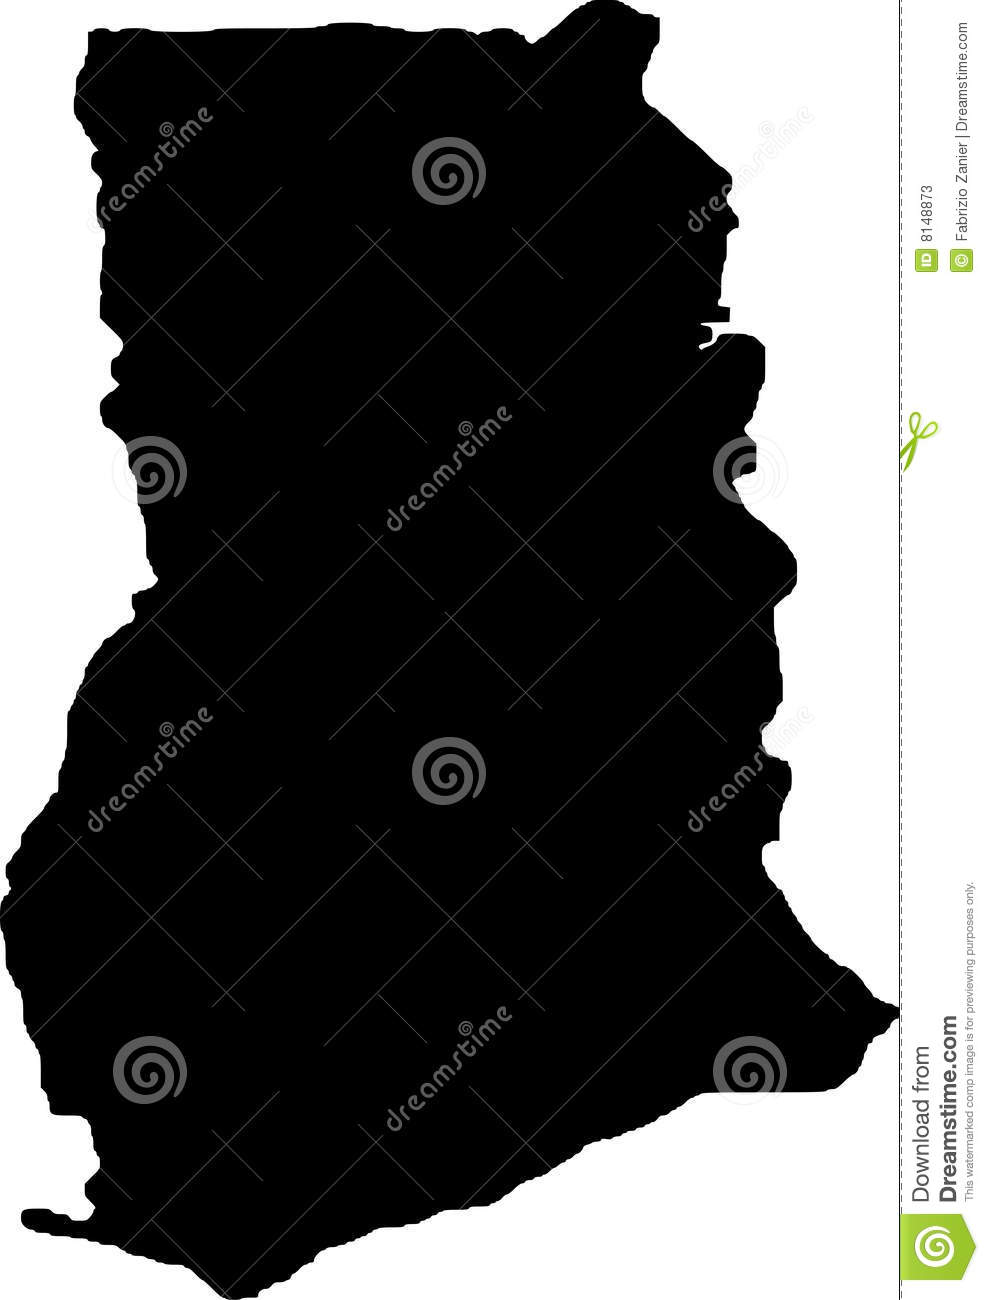 Vector Map Of Ghana Stock Vector Image Of Drawing Country - Ghana map vector